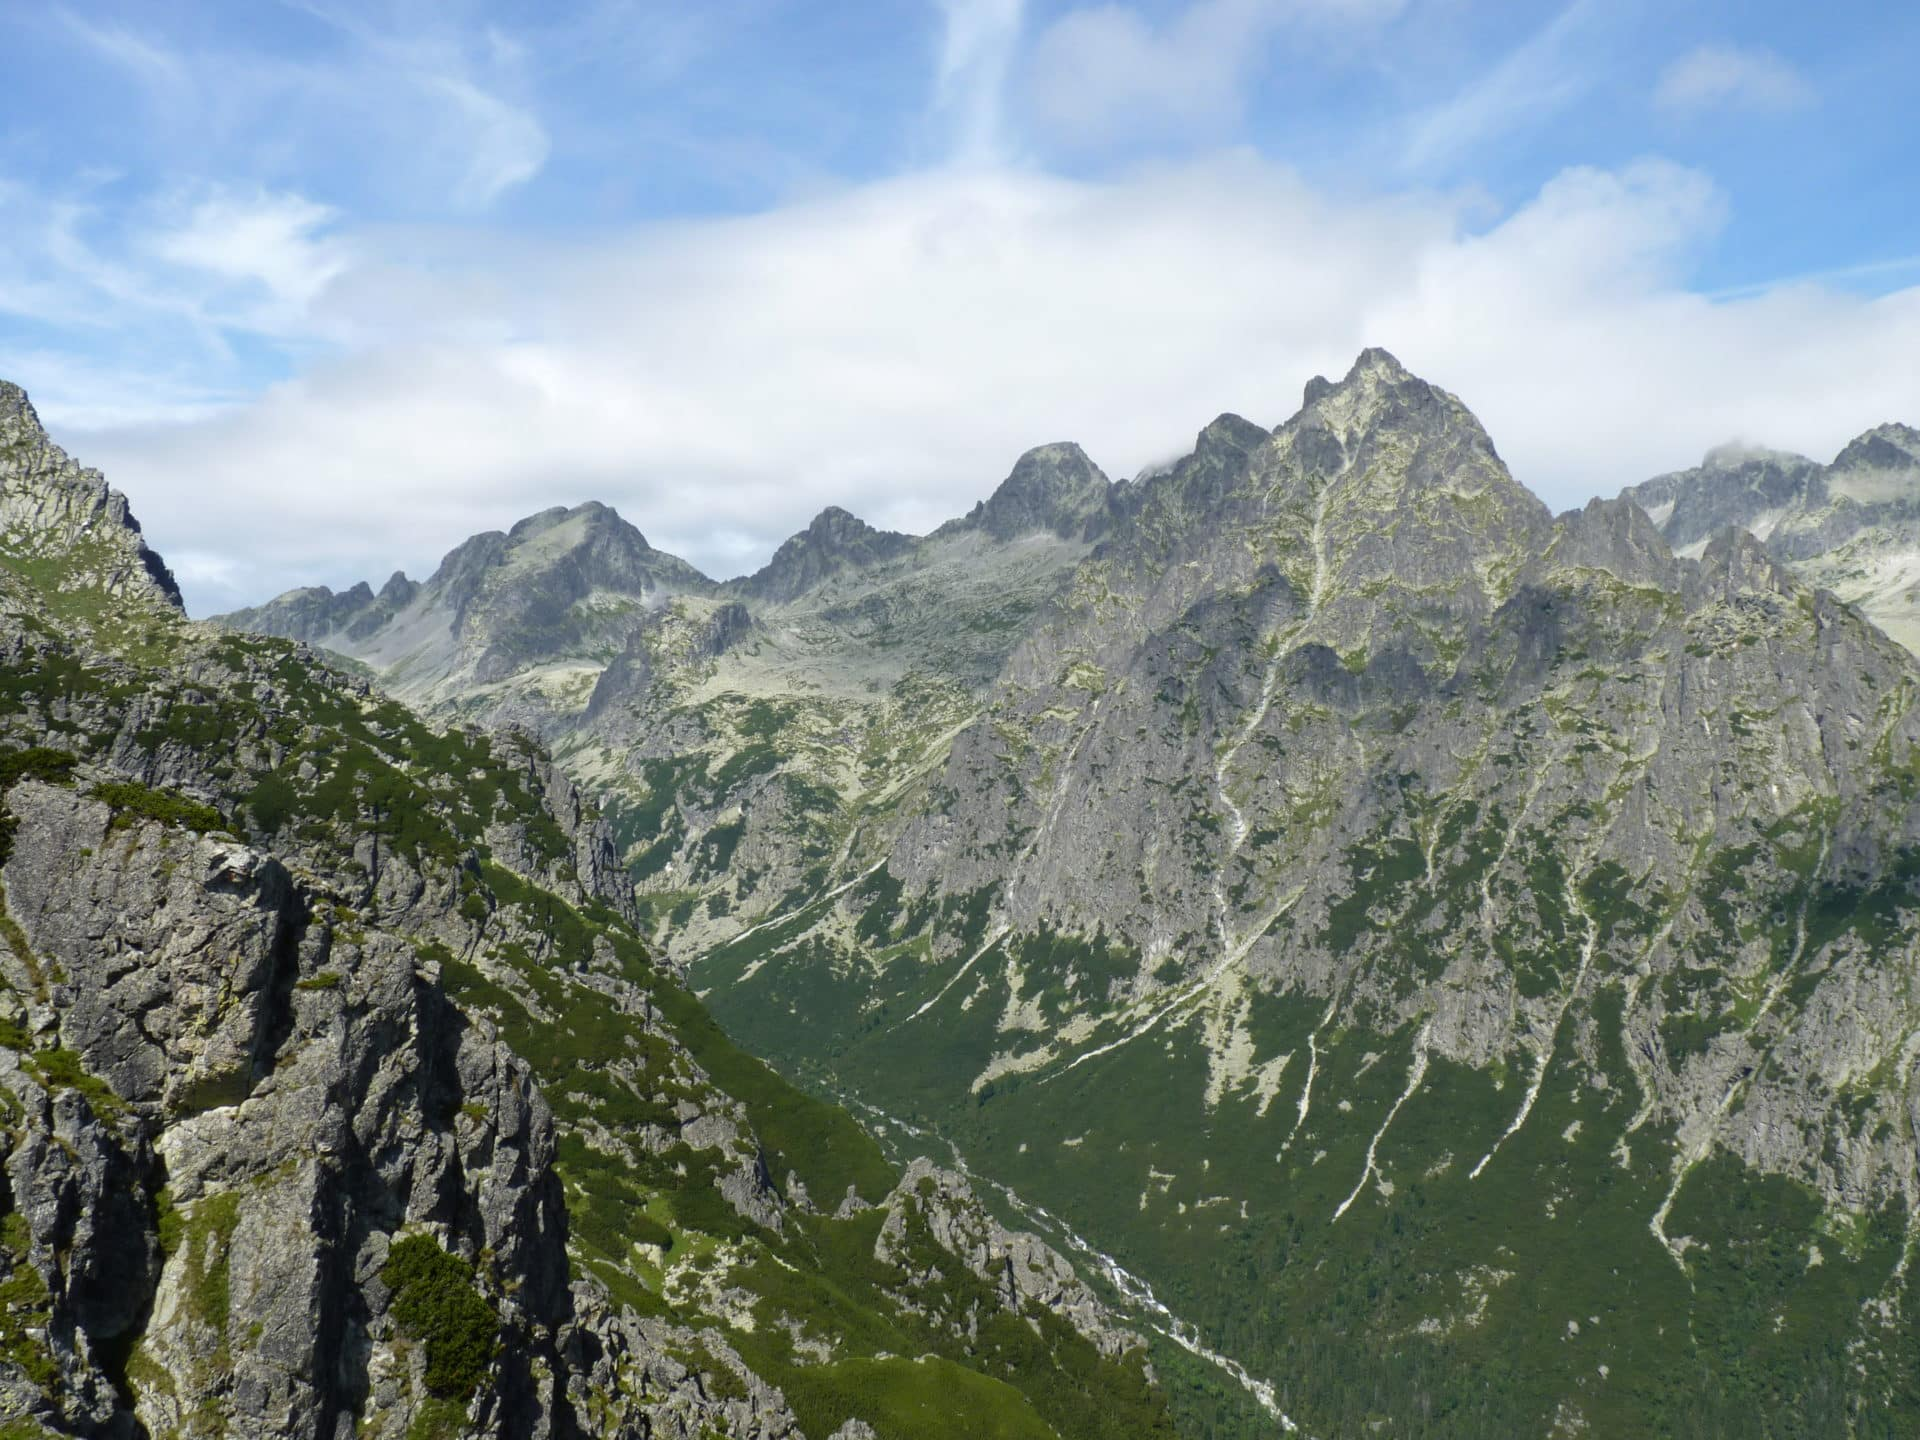 Prostredny hrot guided ascent in the High Tatras